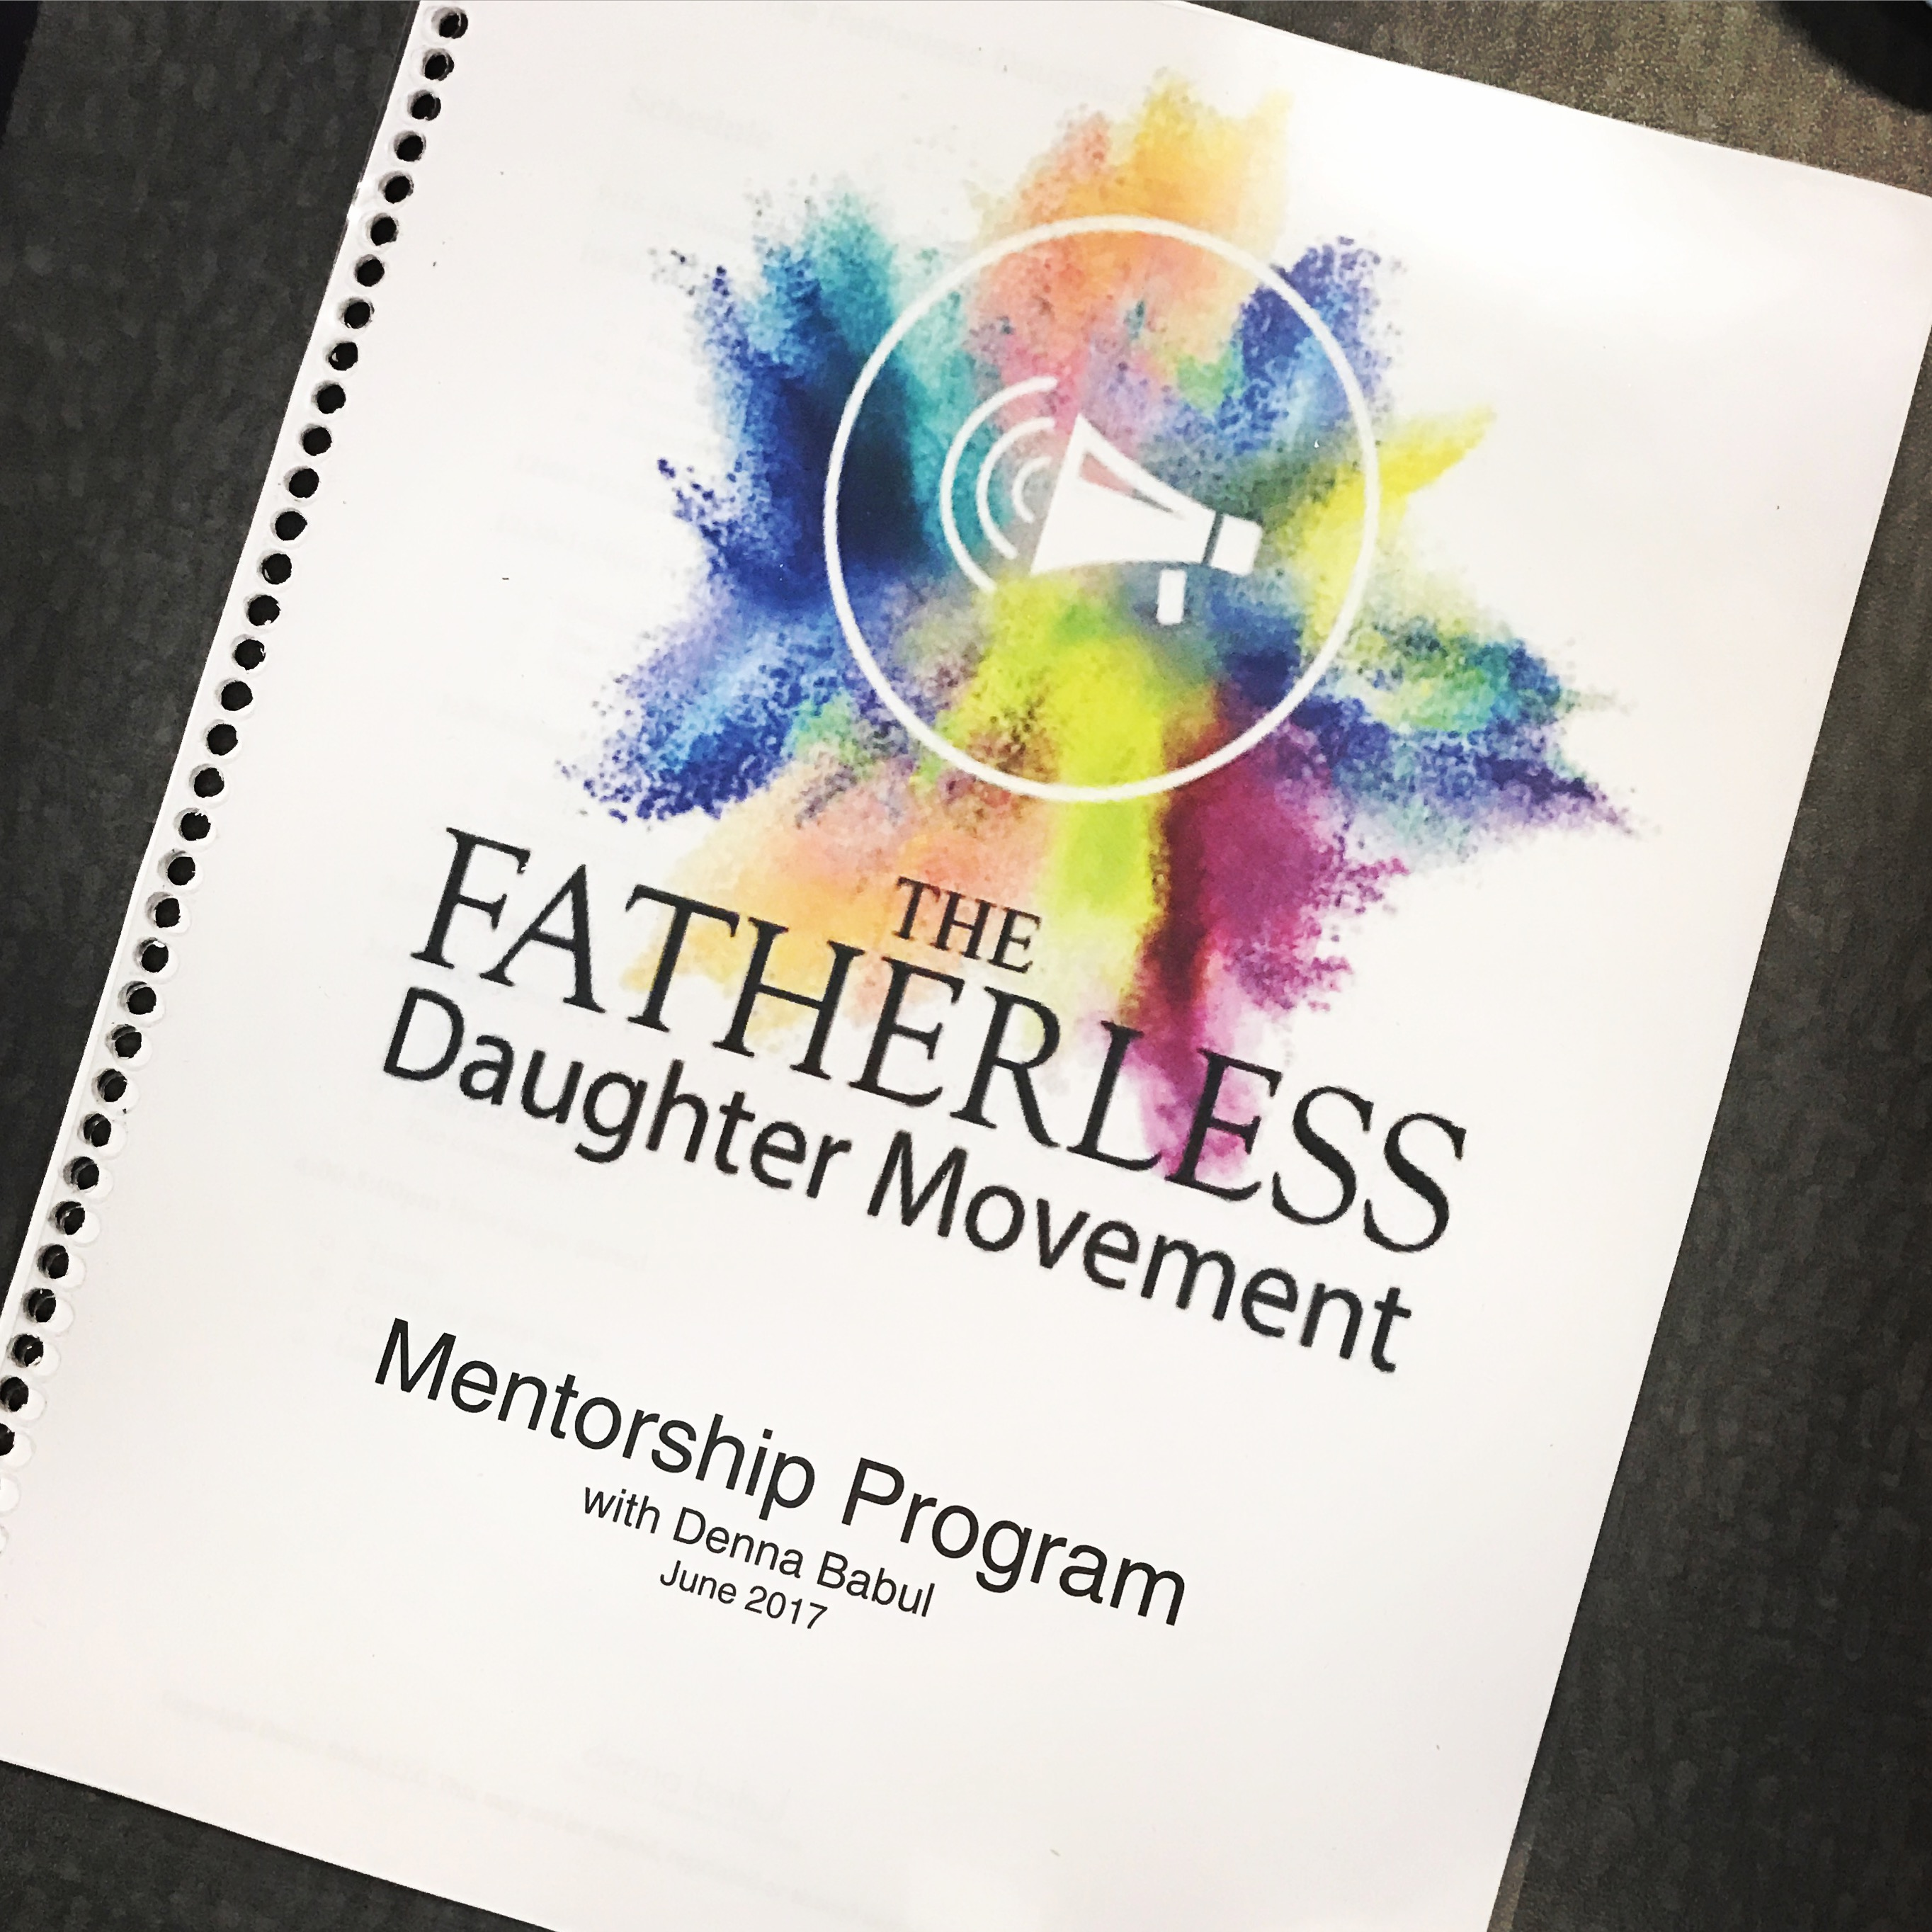 Do You Want to be a Fatherless Daughter Mentor?